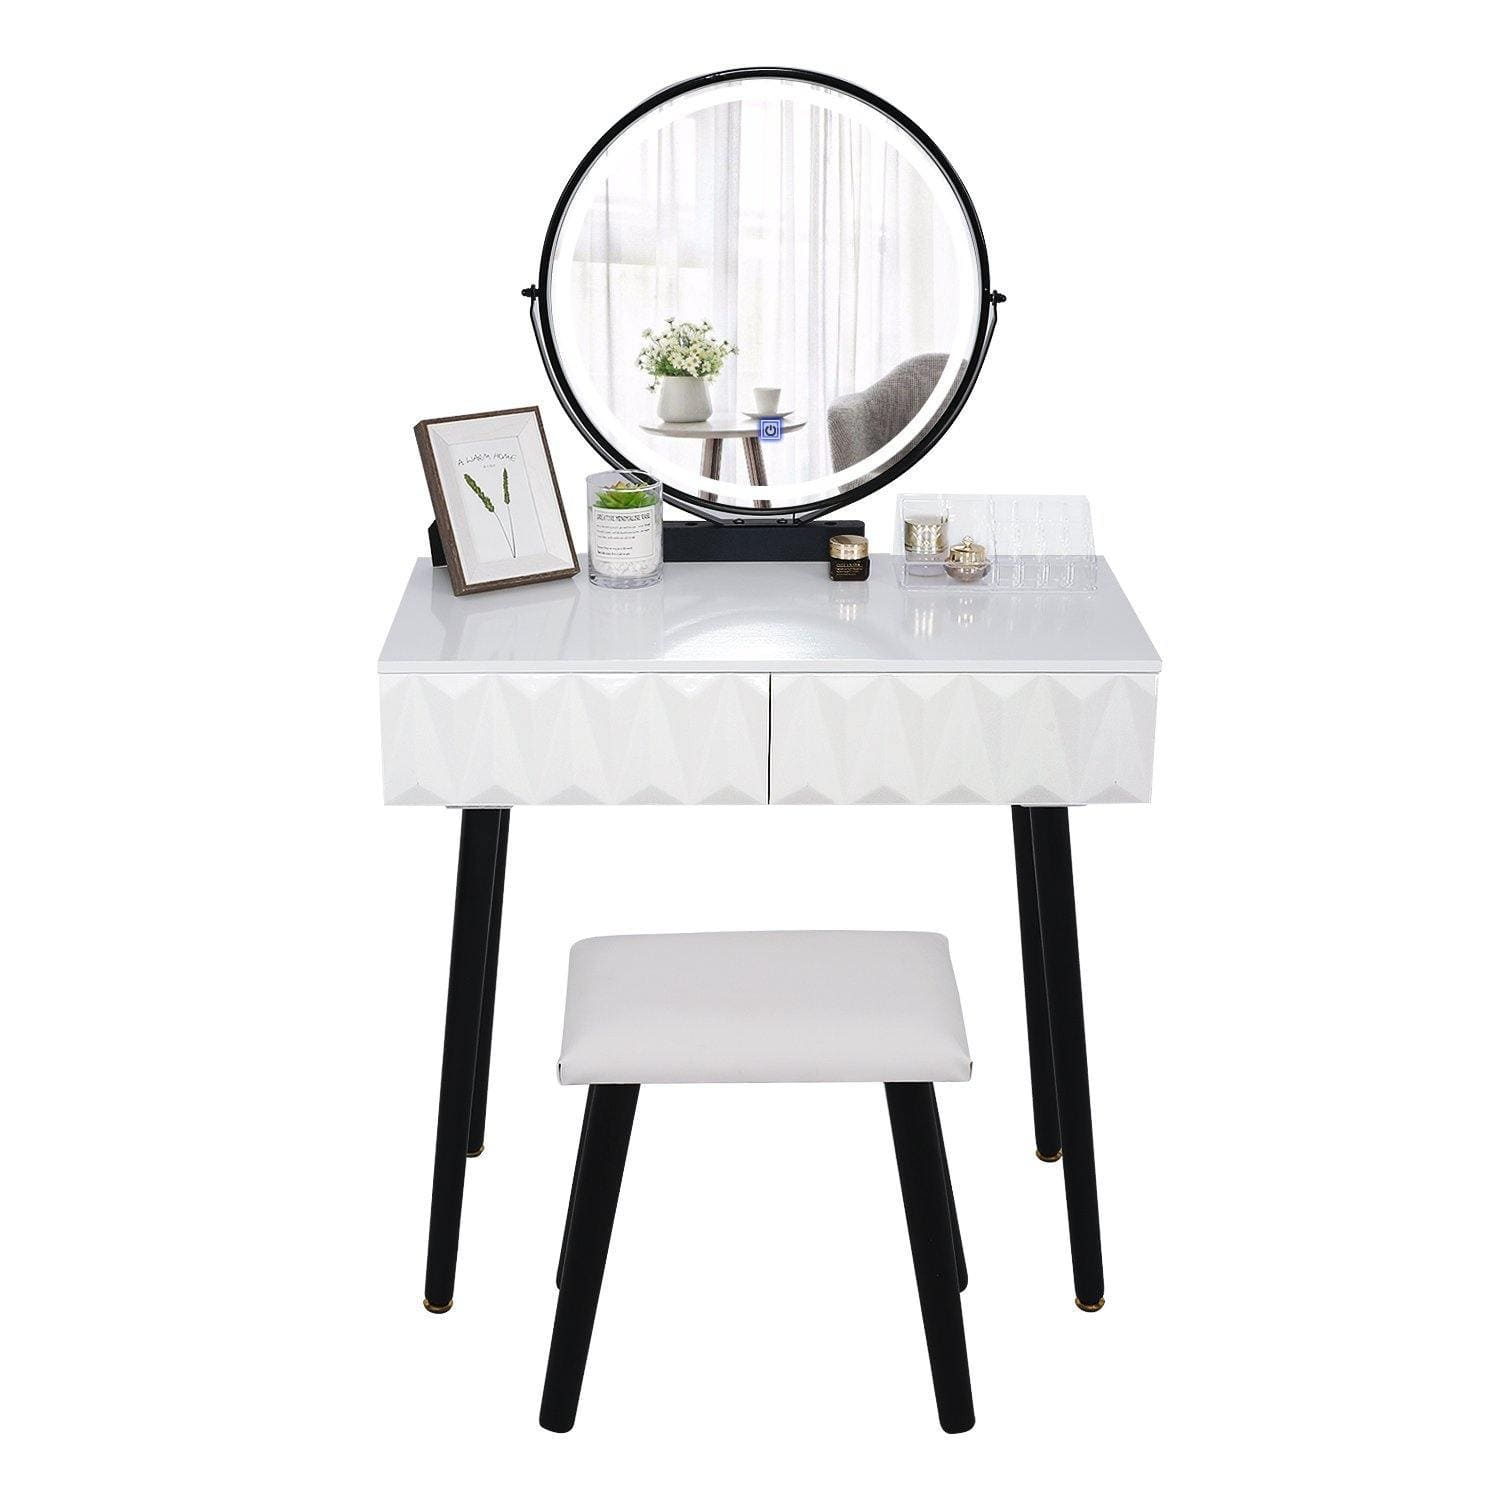 YOURLITE Vanity Table Set With Adjustable Brightness Mirror(White)